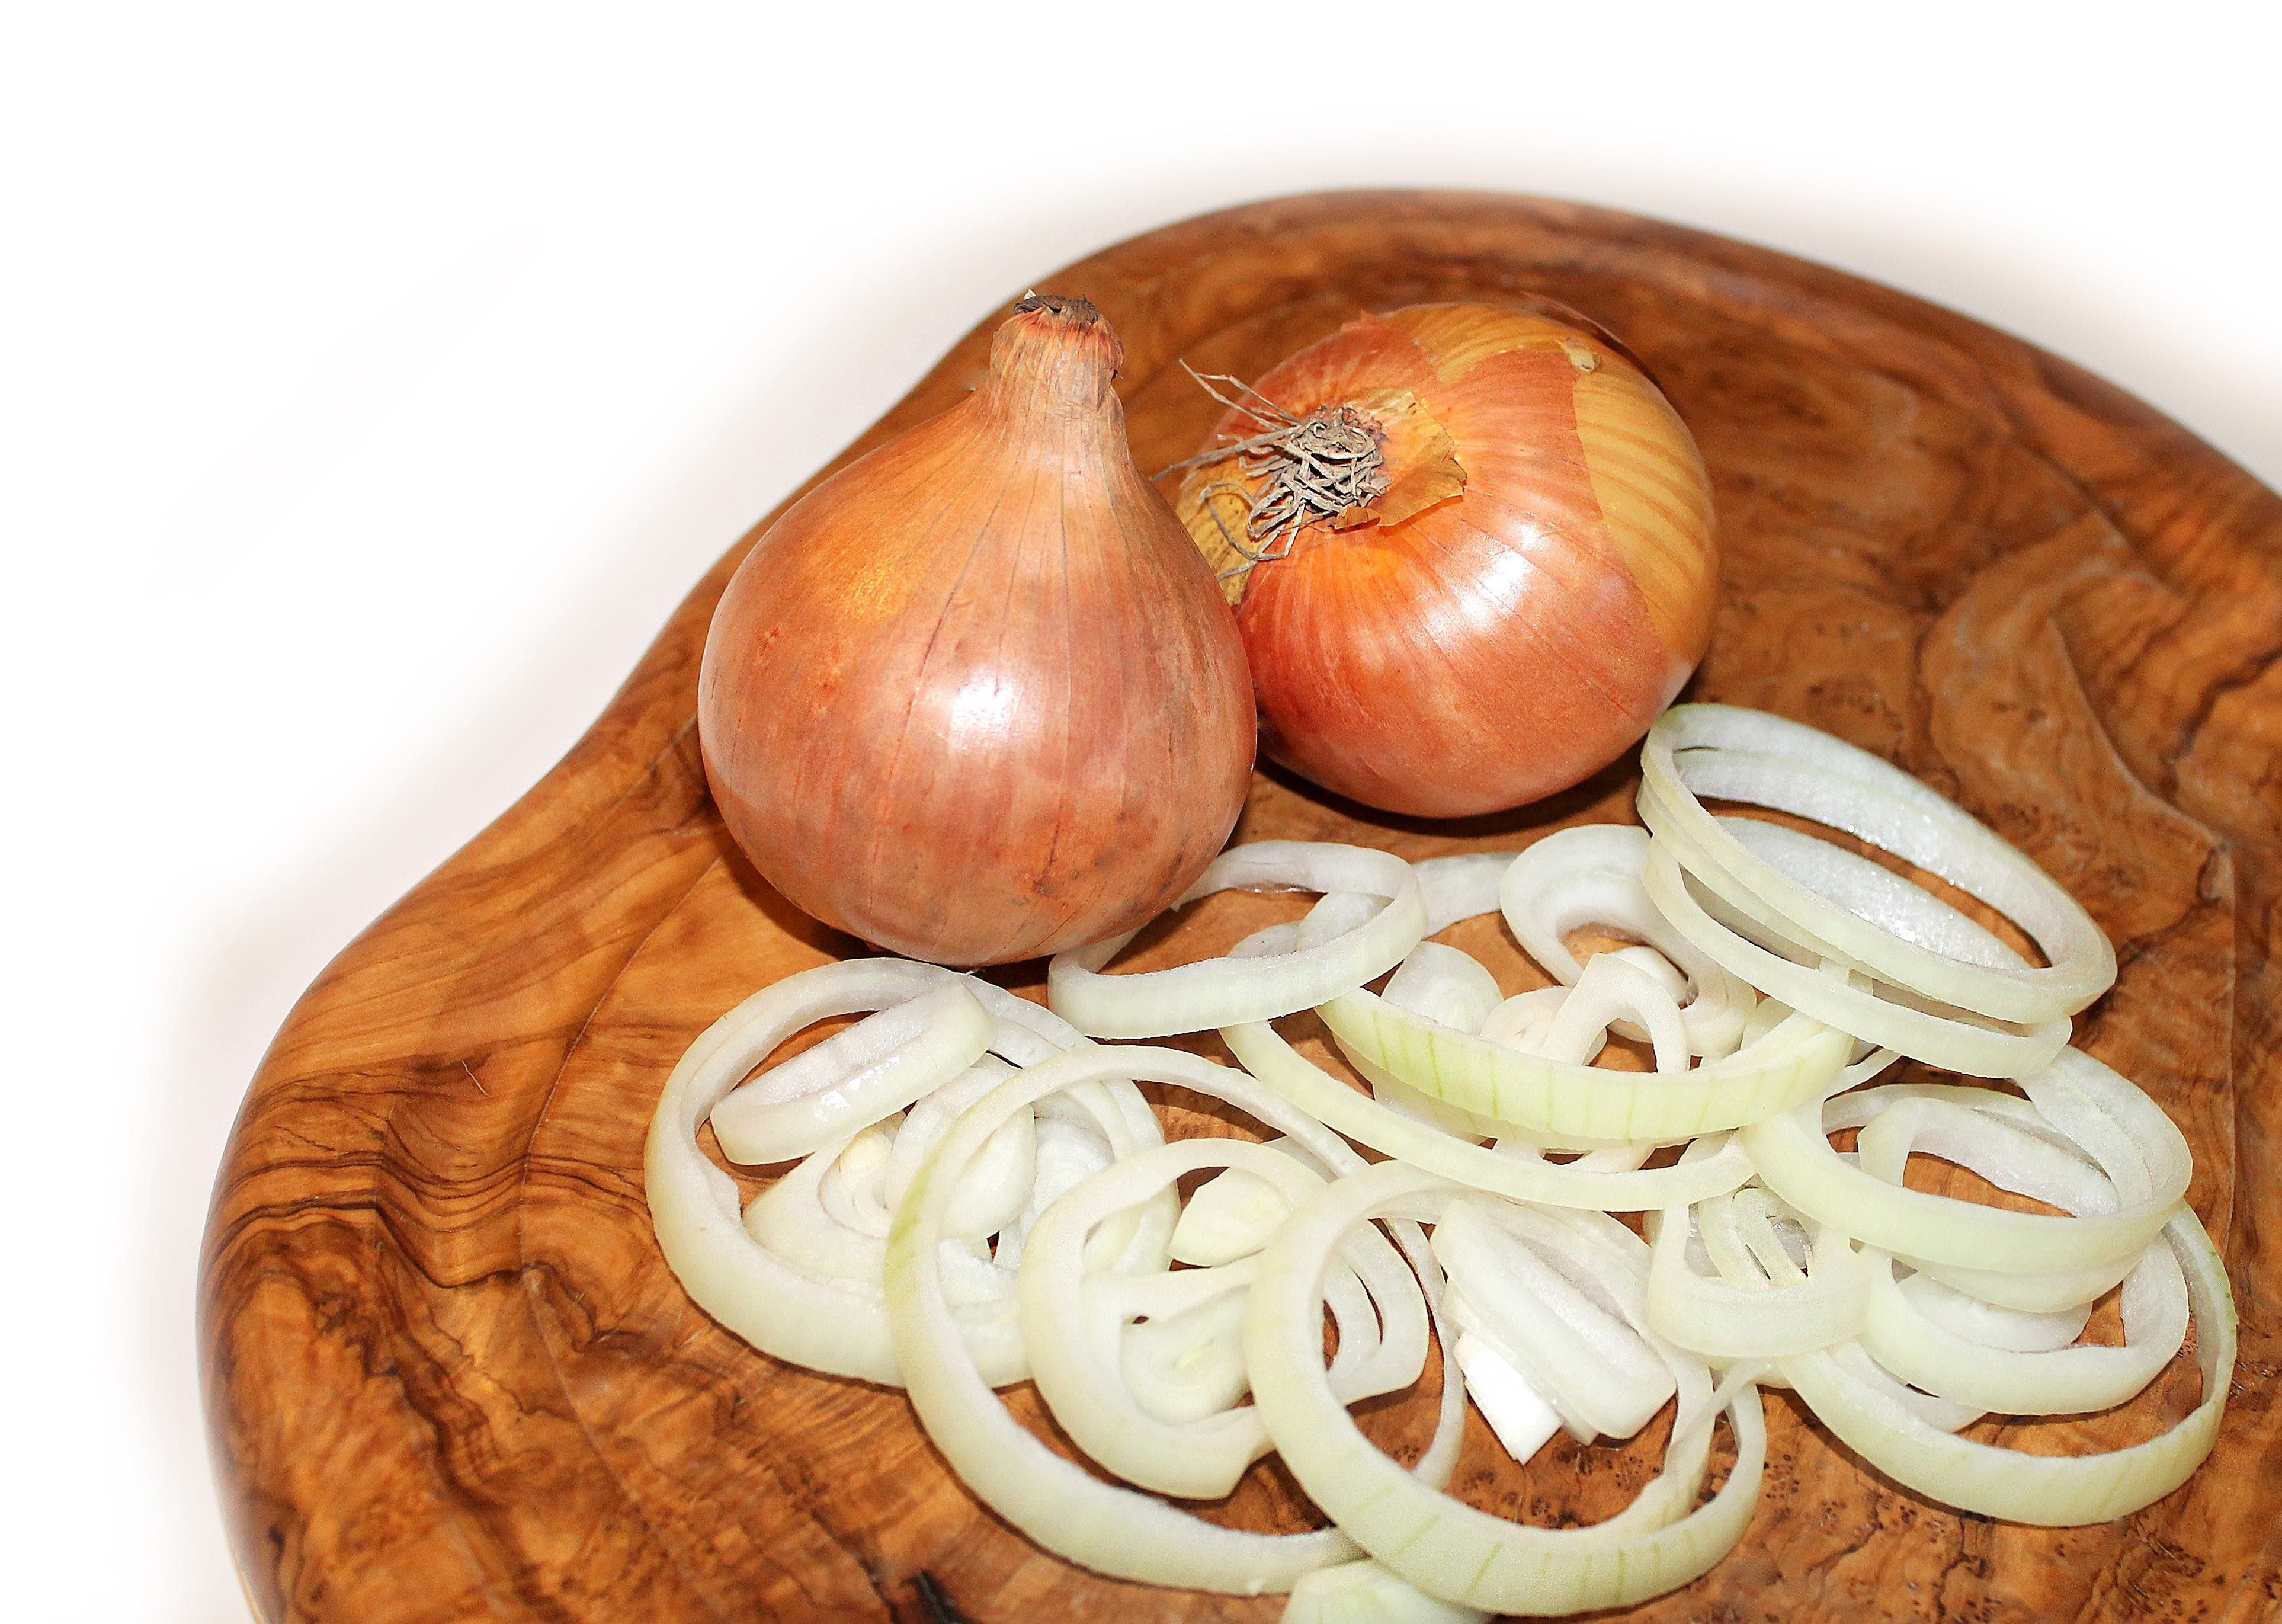 Onions Beside Sliced Onions